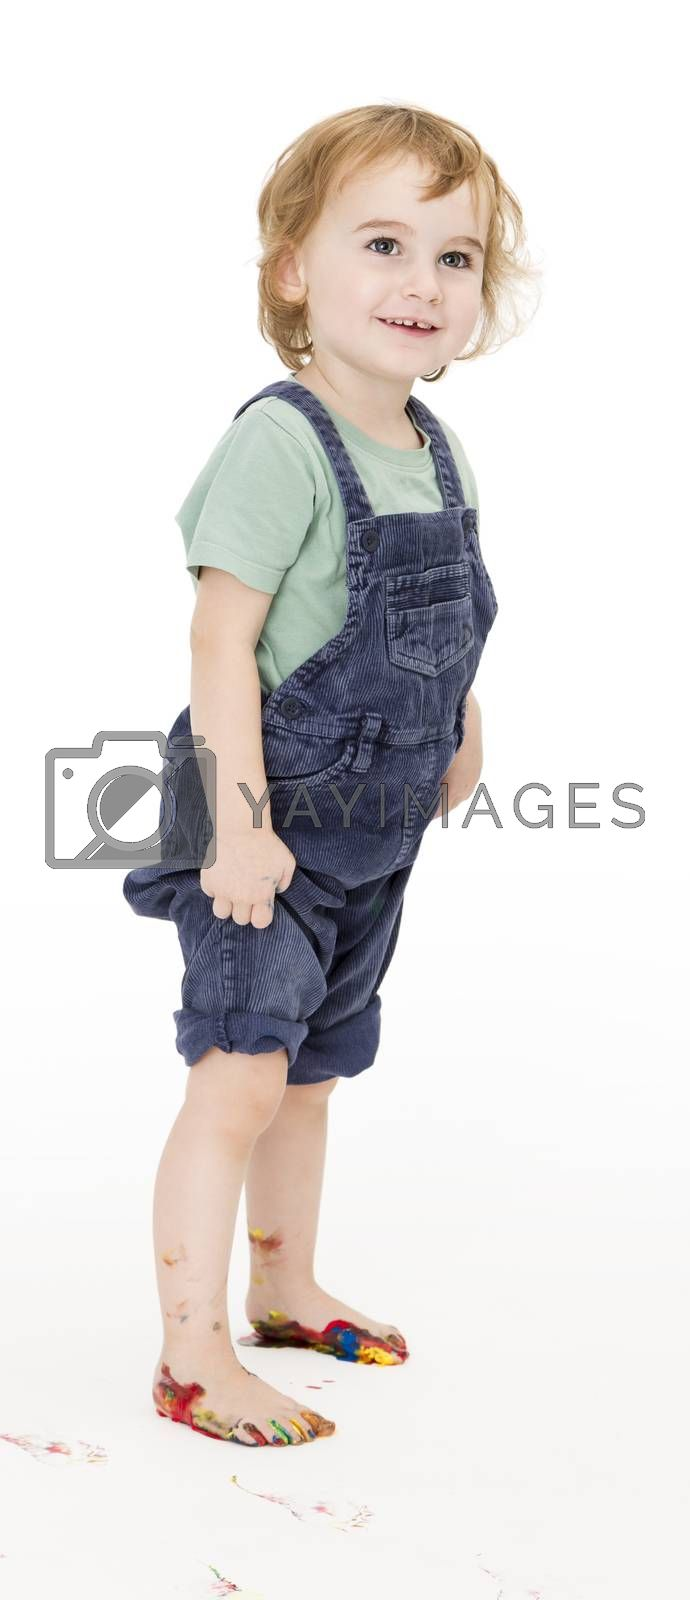 child with painted feet holding trousers up. studio shot in grey background